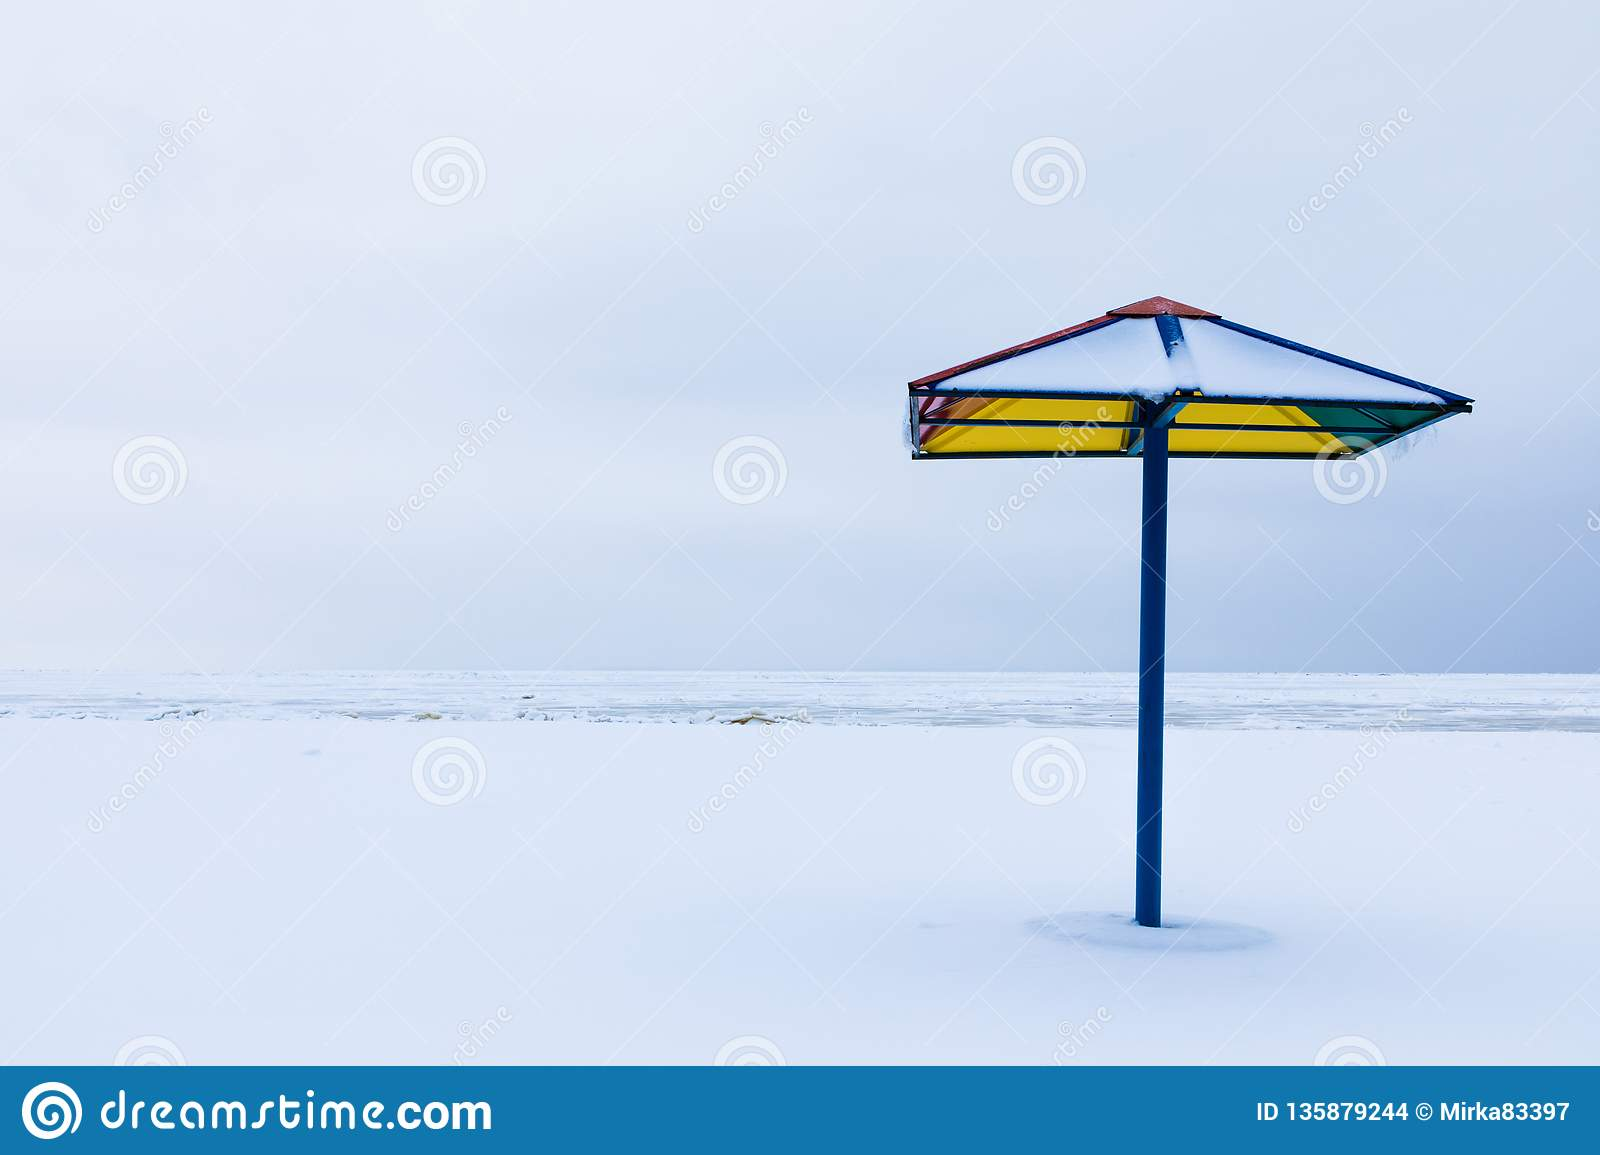 The alone sunshade or the parasol on the winter beach under the snow